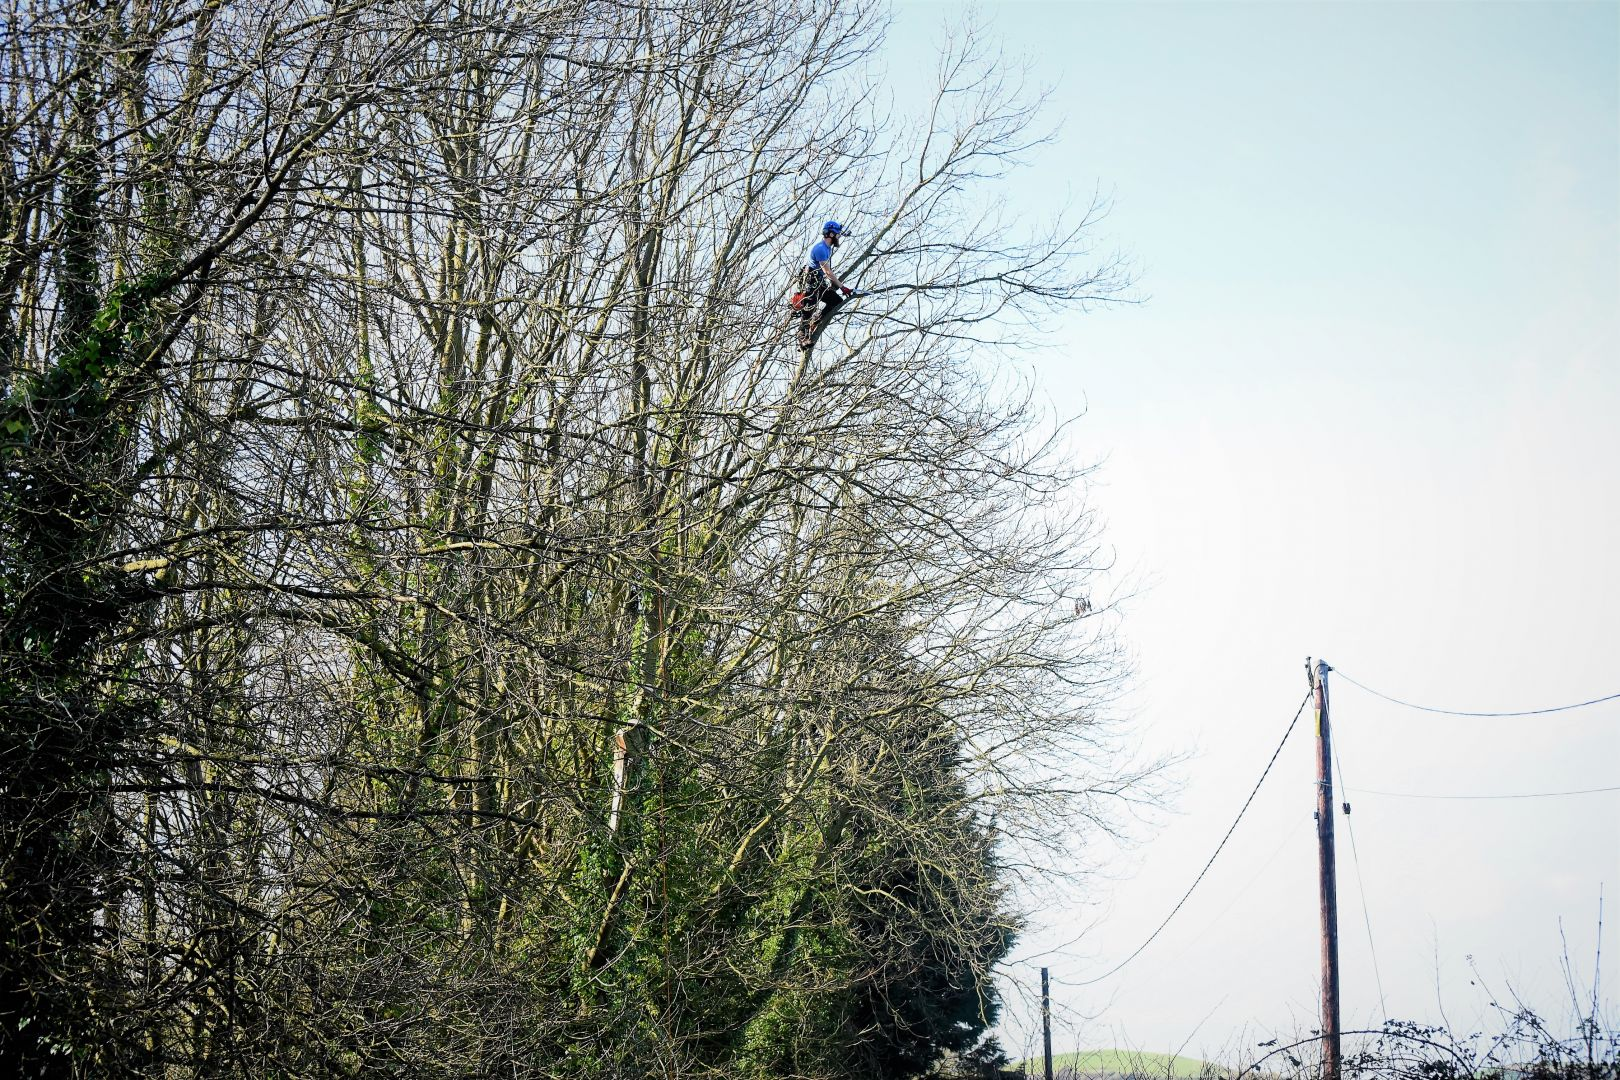 Weymouth tree surgery, Weymouth tree surgeons, tree surgeons Weymouth, storm damage, clearing storm damage, arborist, climbing arborist, emergency tree work, tree safety work, wood chipper, recycling, waste recycling